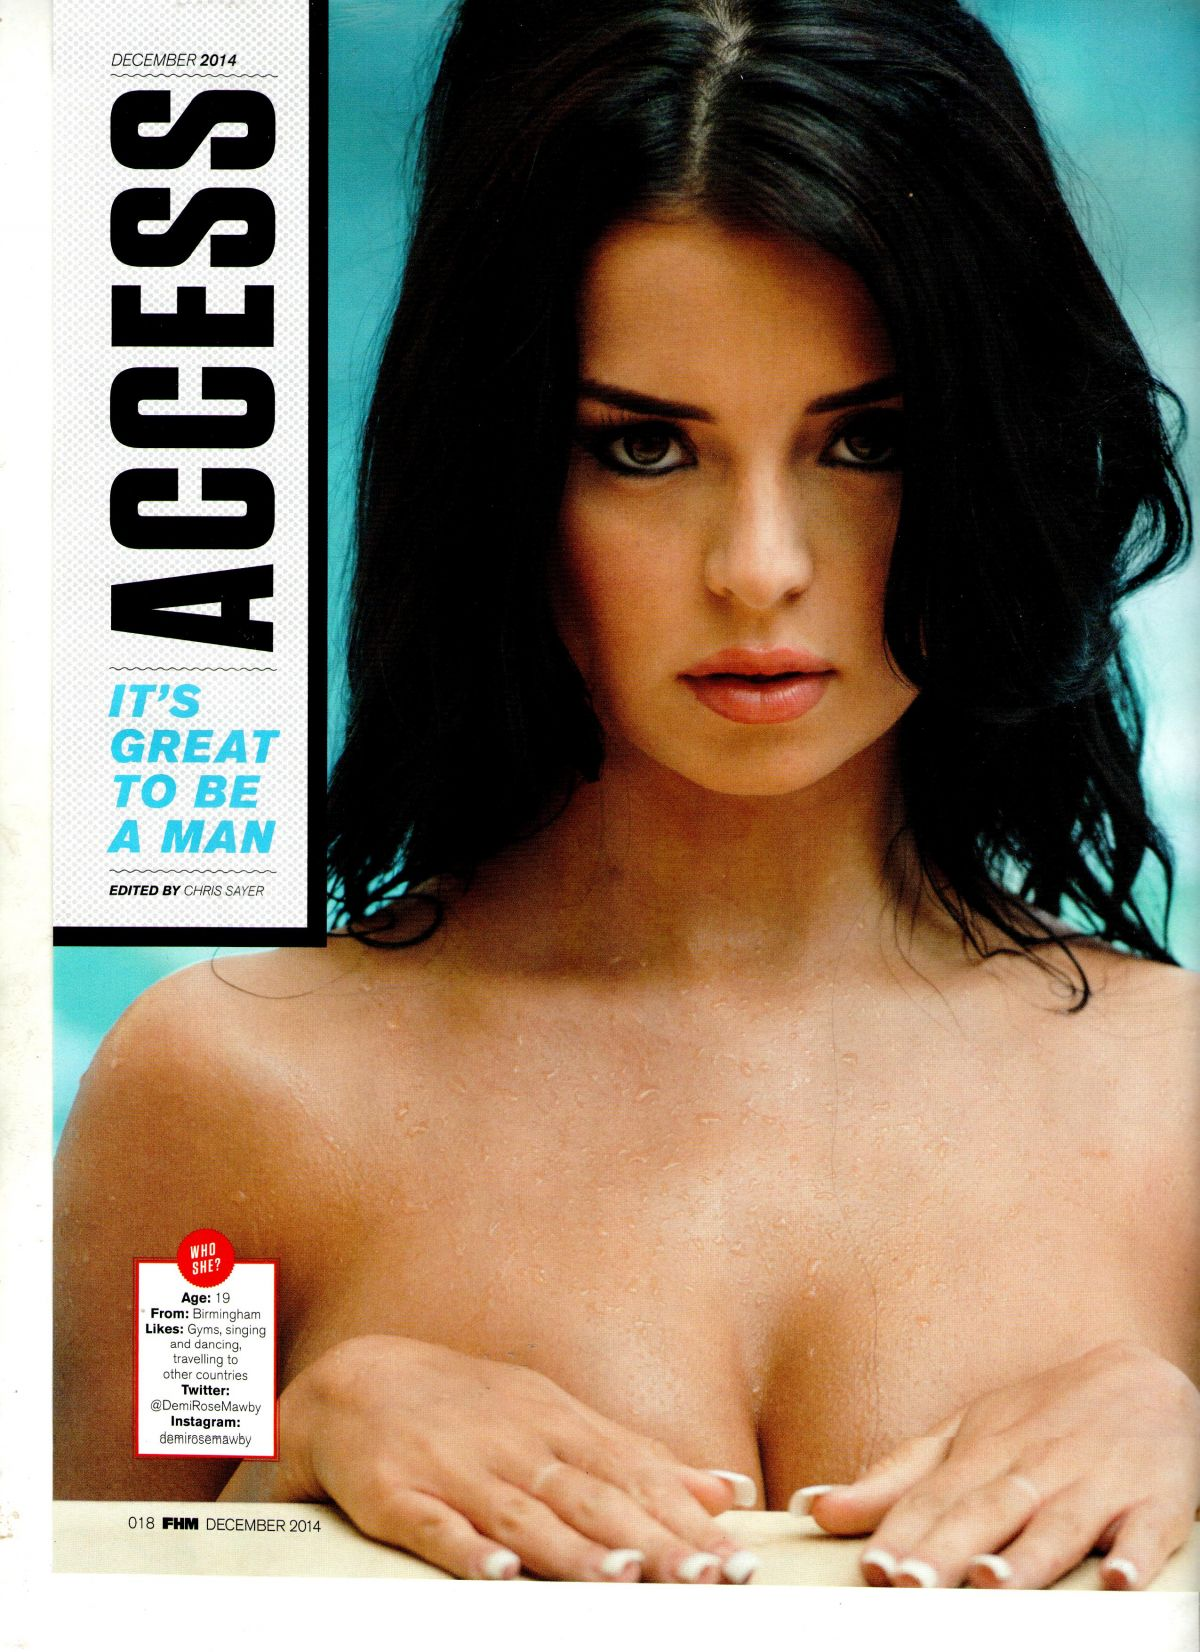 DEMI ROSE MAWBY in Access-FHM Magazine, December 2014 Issue